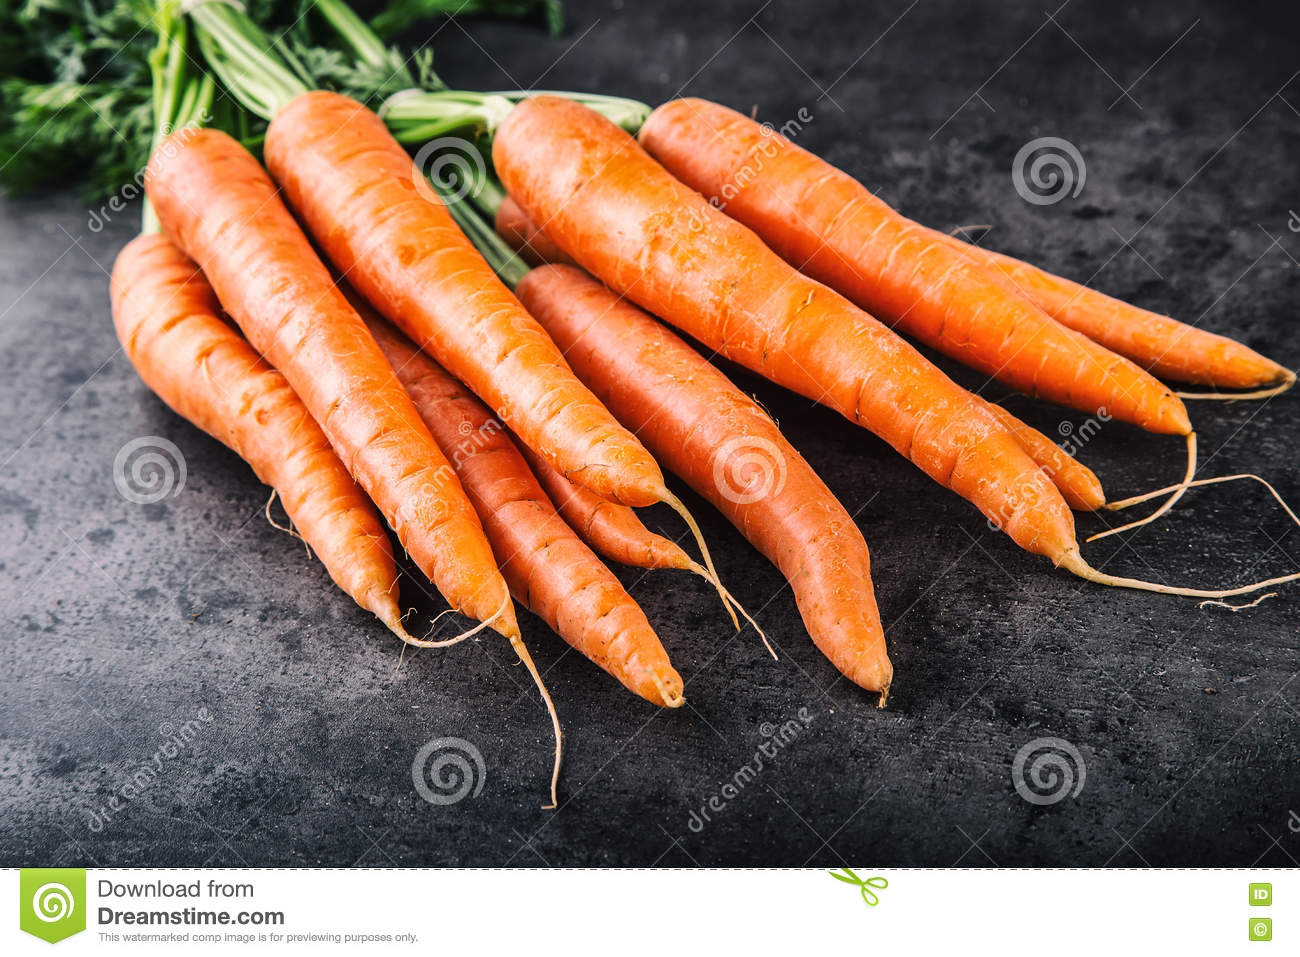 What dreams of carrots